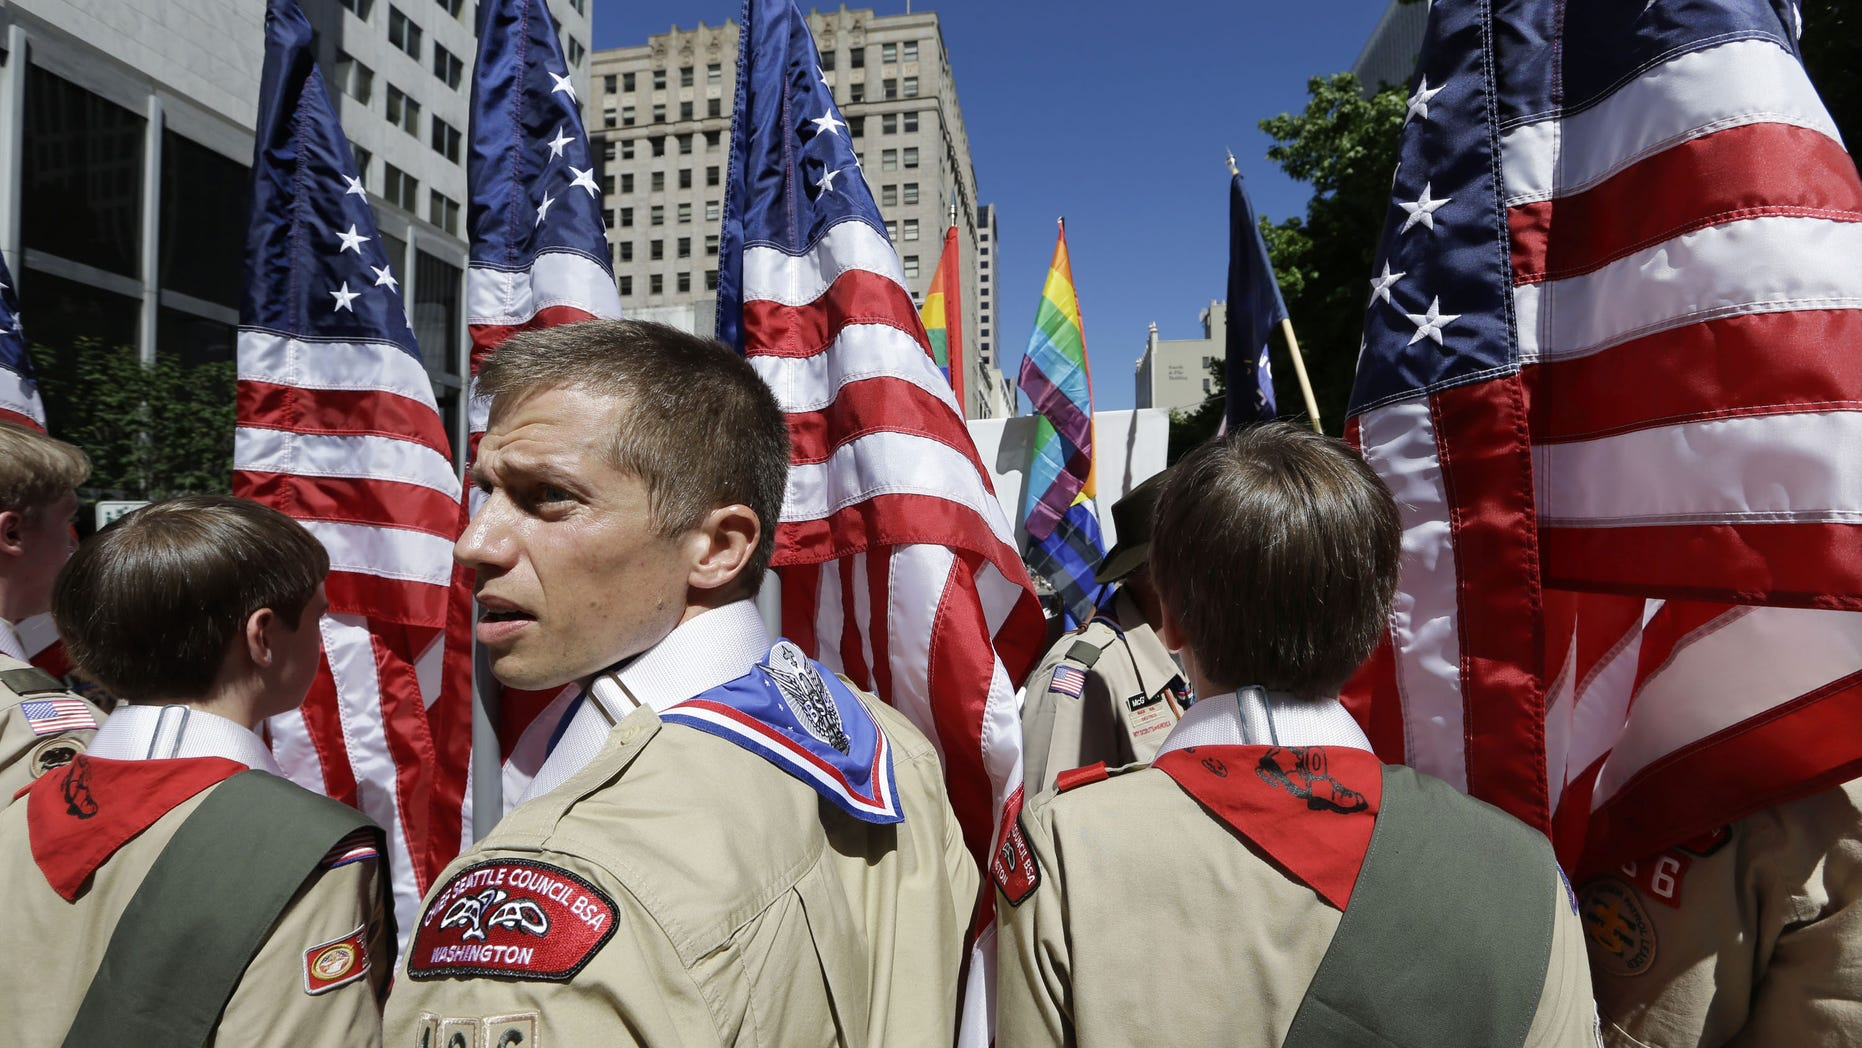 June 30, 2013: In this file photo, Boy Scouts from the Chief Seattle Council carry U.S. flags as they prepare to march in the Gay Pride Parade in downtown Seattle.